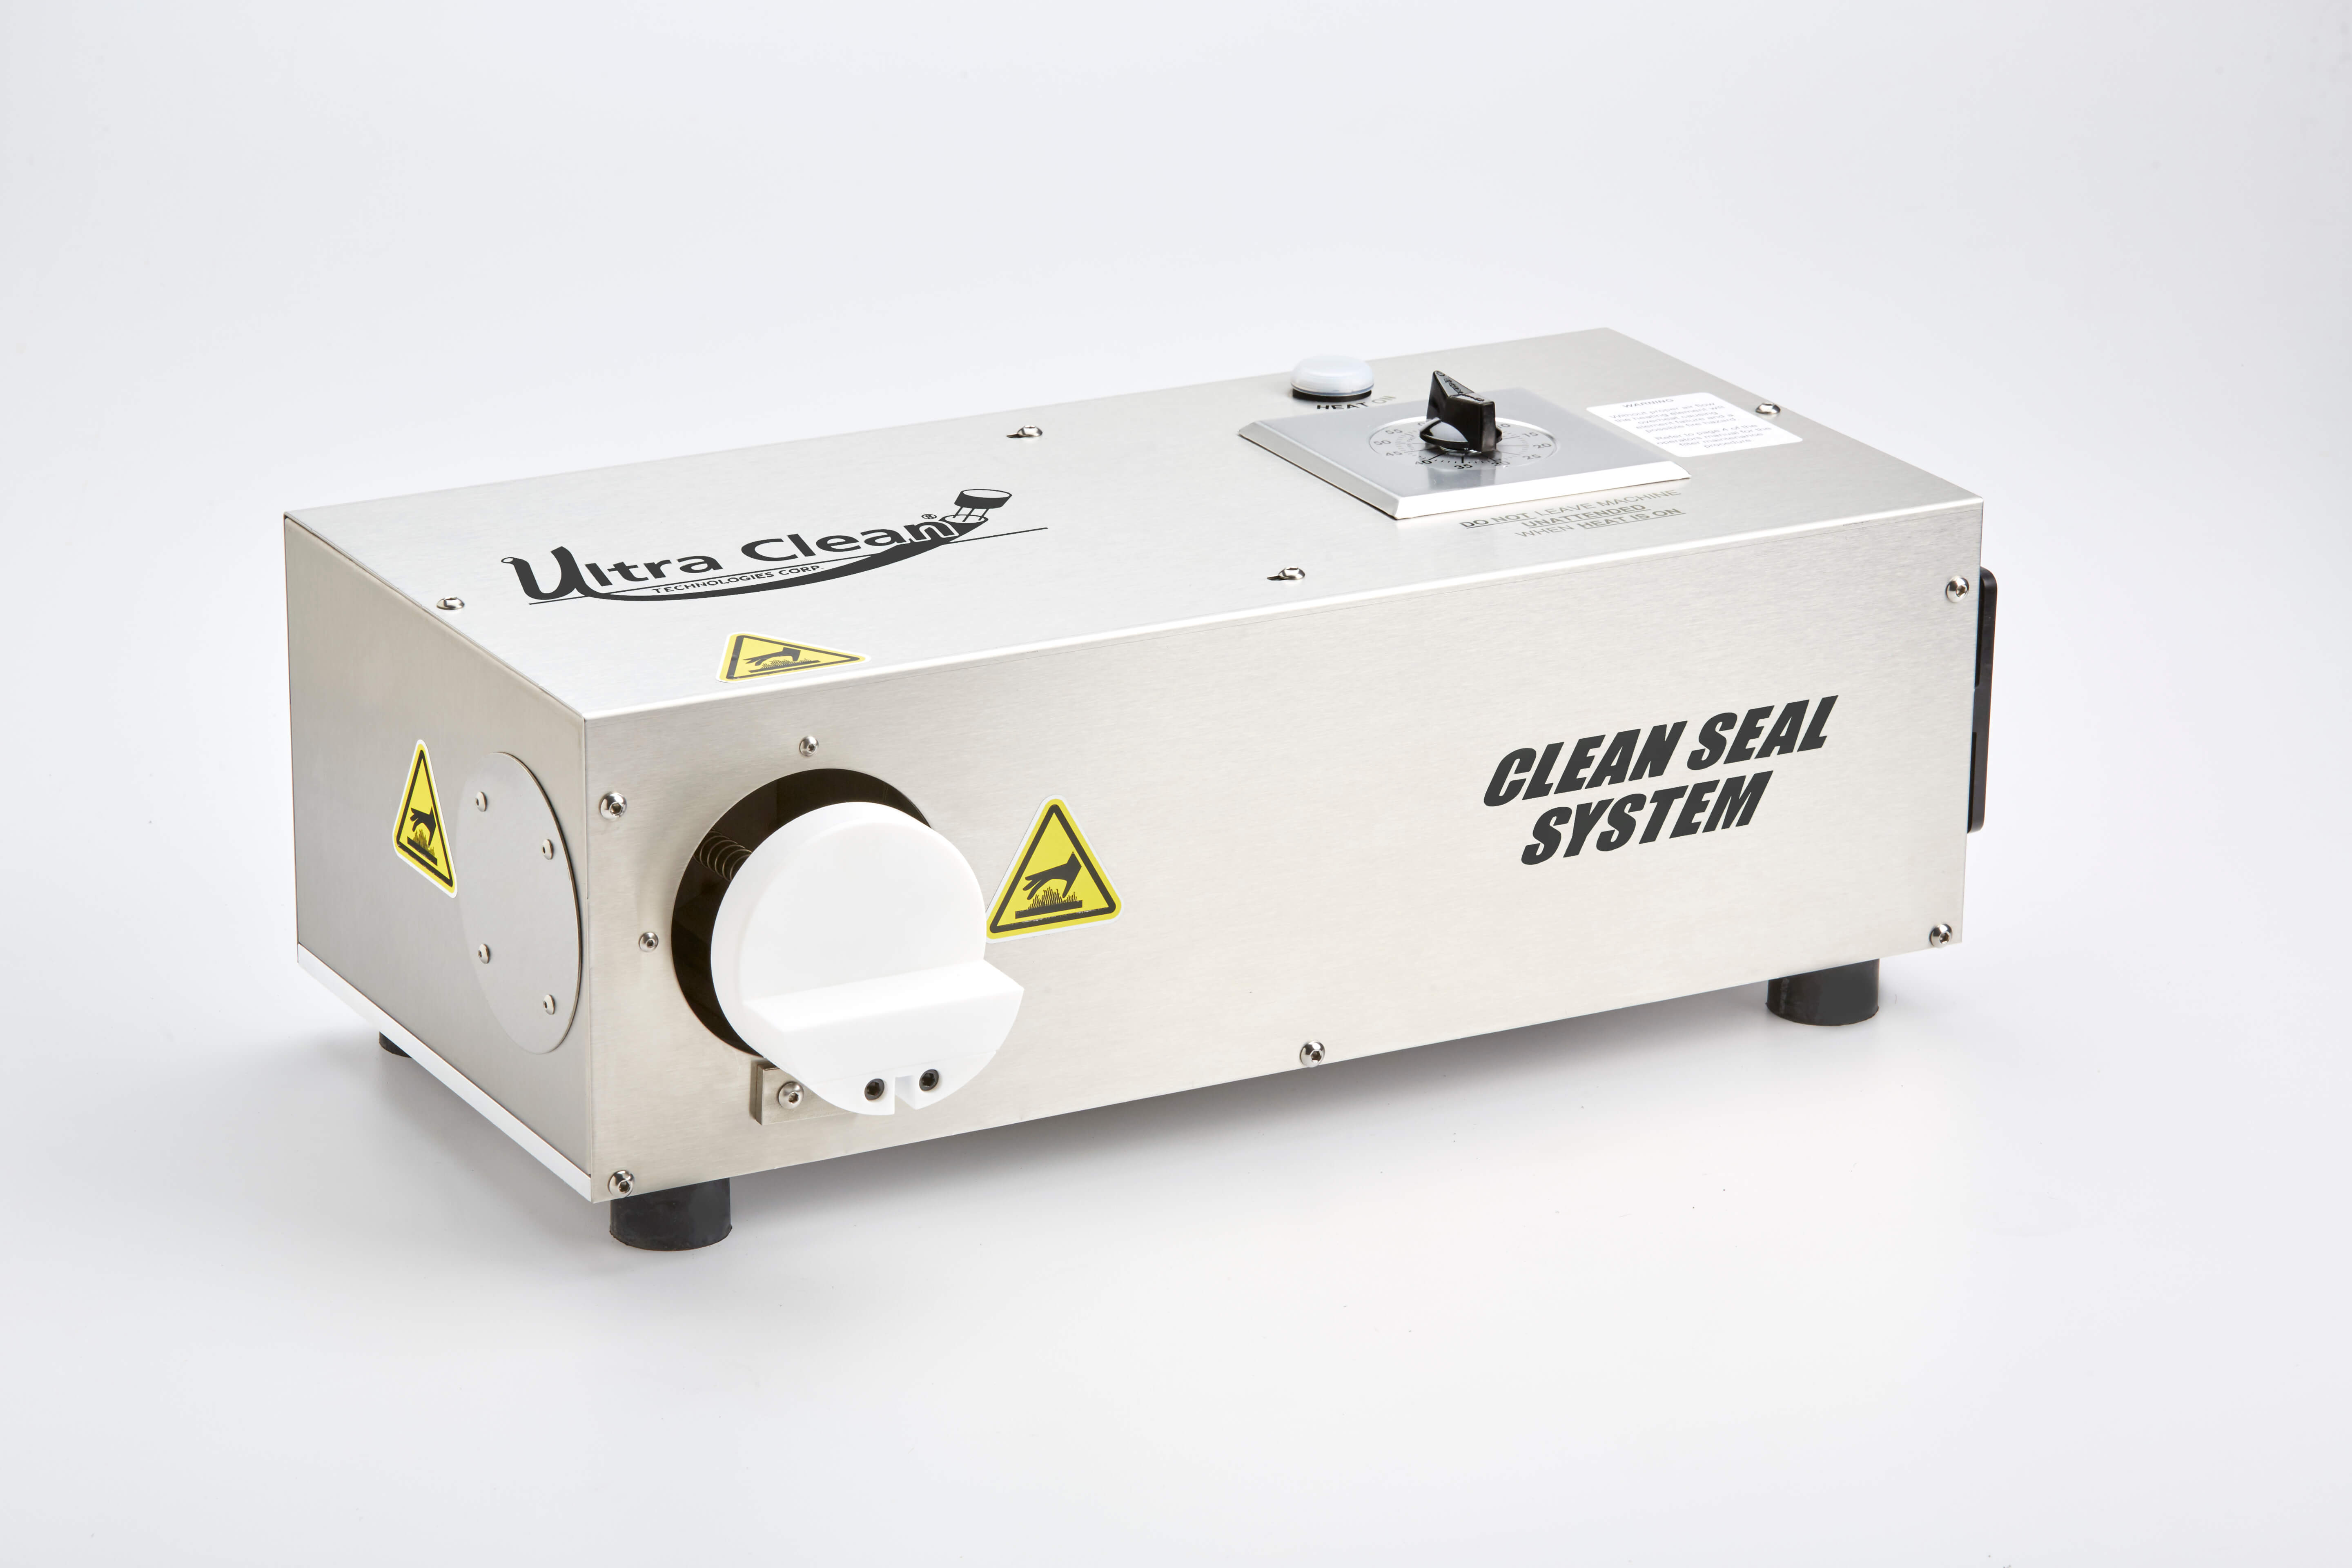 Ultra Clean Technologies Clean Seal System Base Model Generation Two UC-CSS-230v-G2